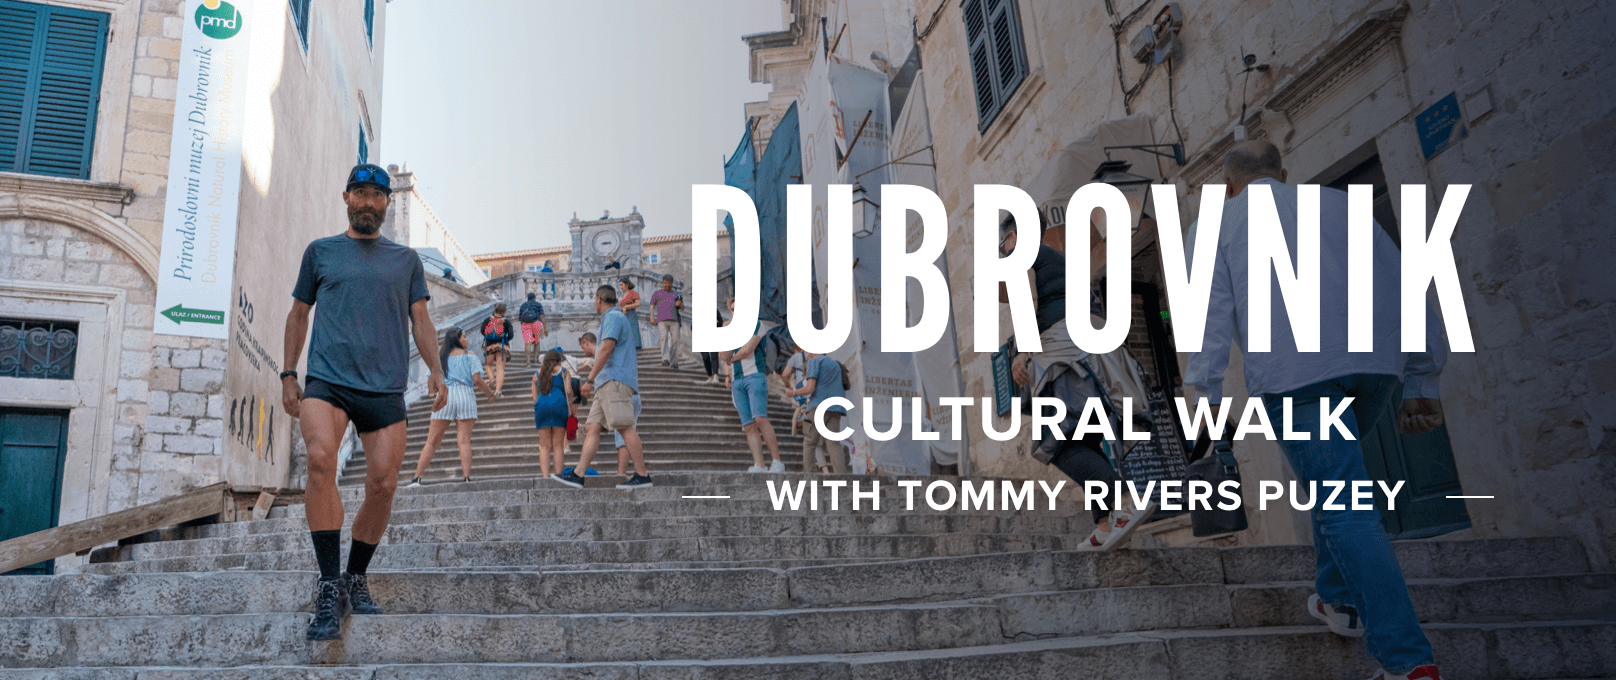 iFit-Dubrovnik Cultural Walk, Croatia with Tommy Rivers Puzey walking workout